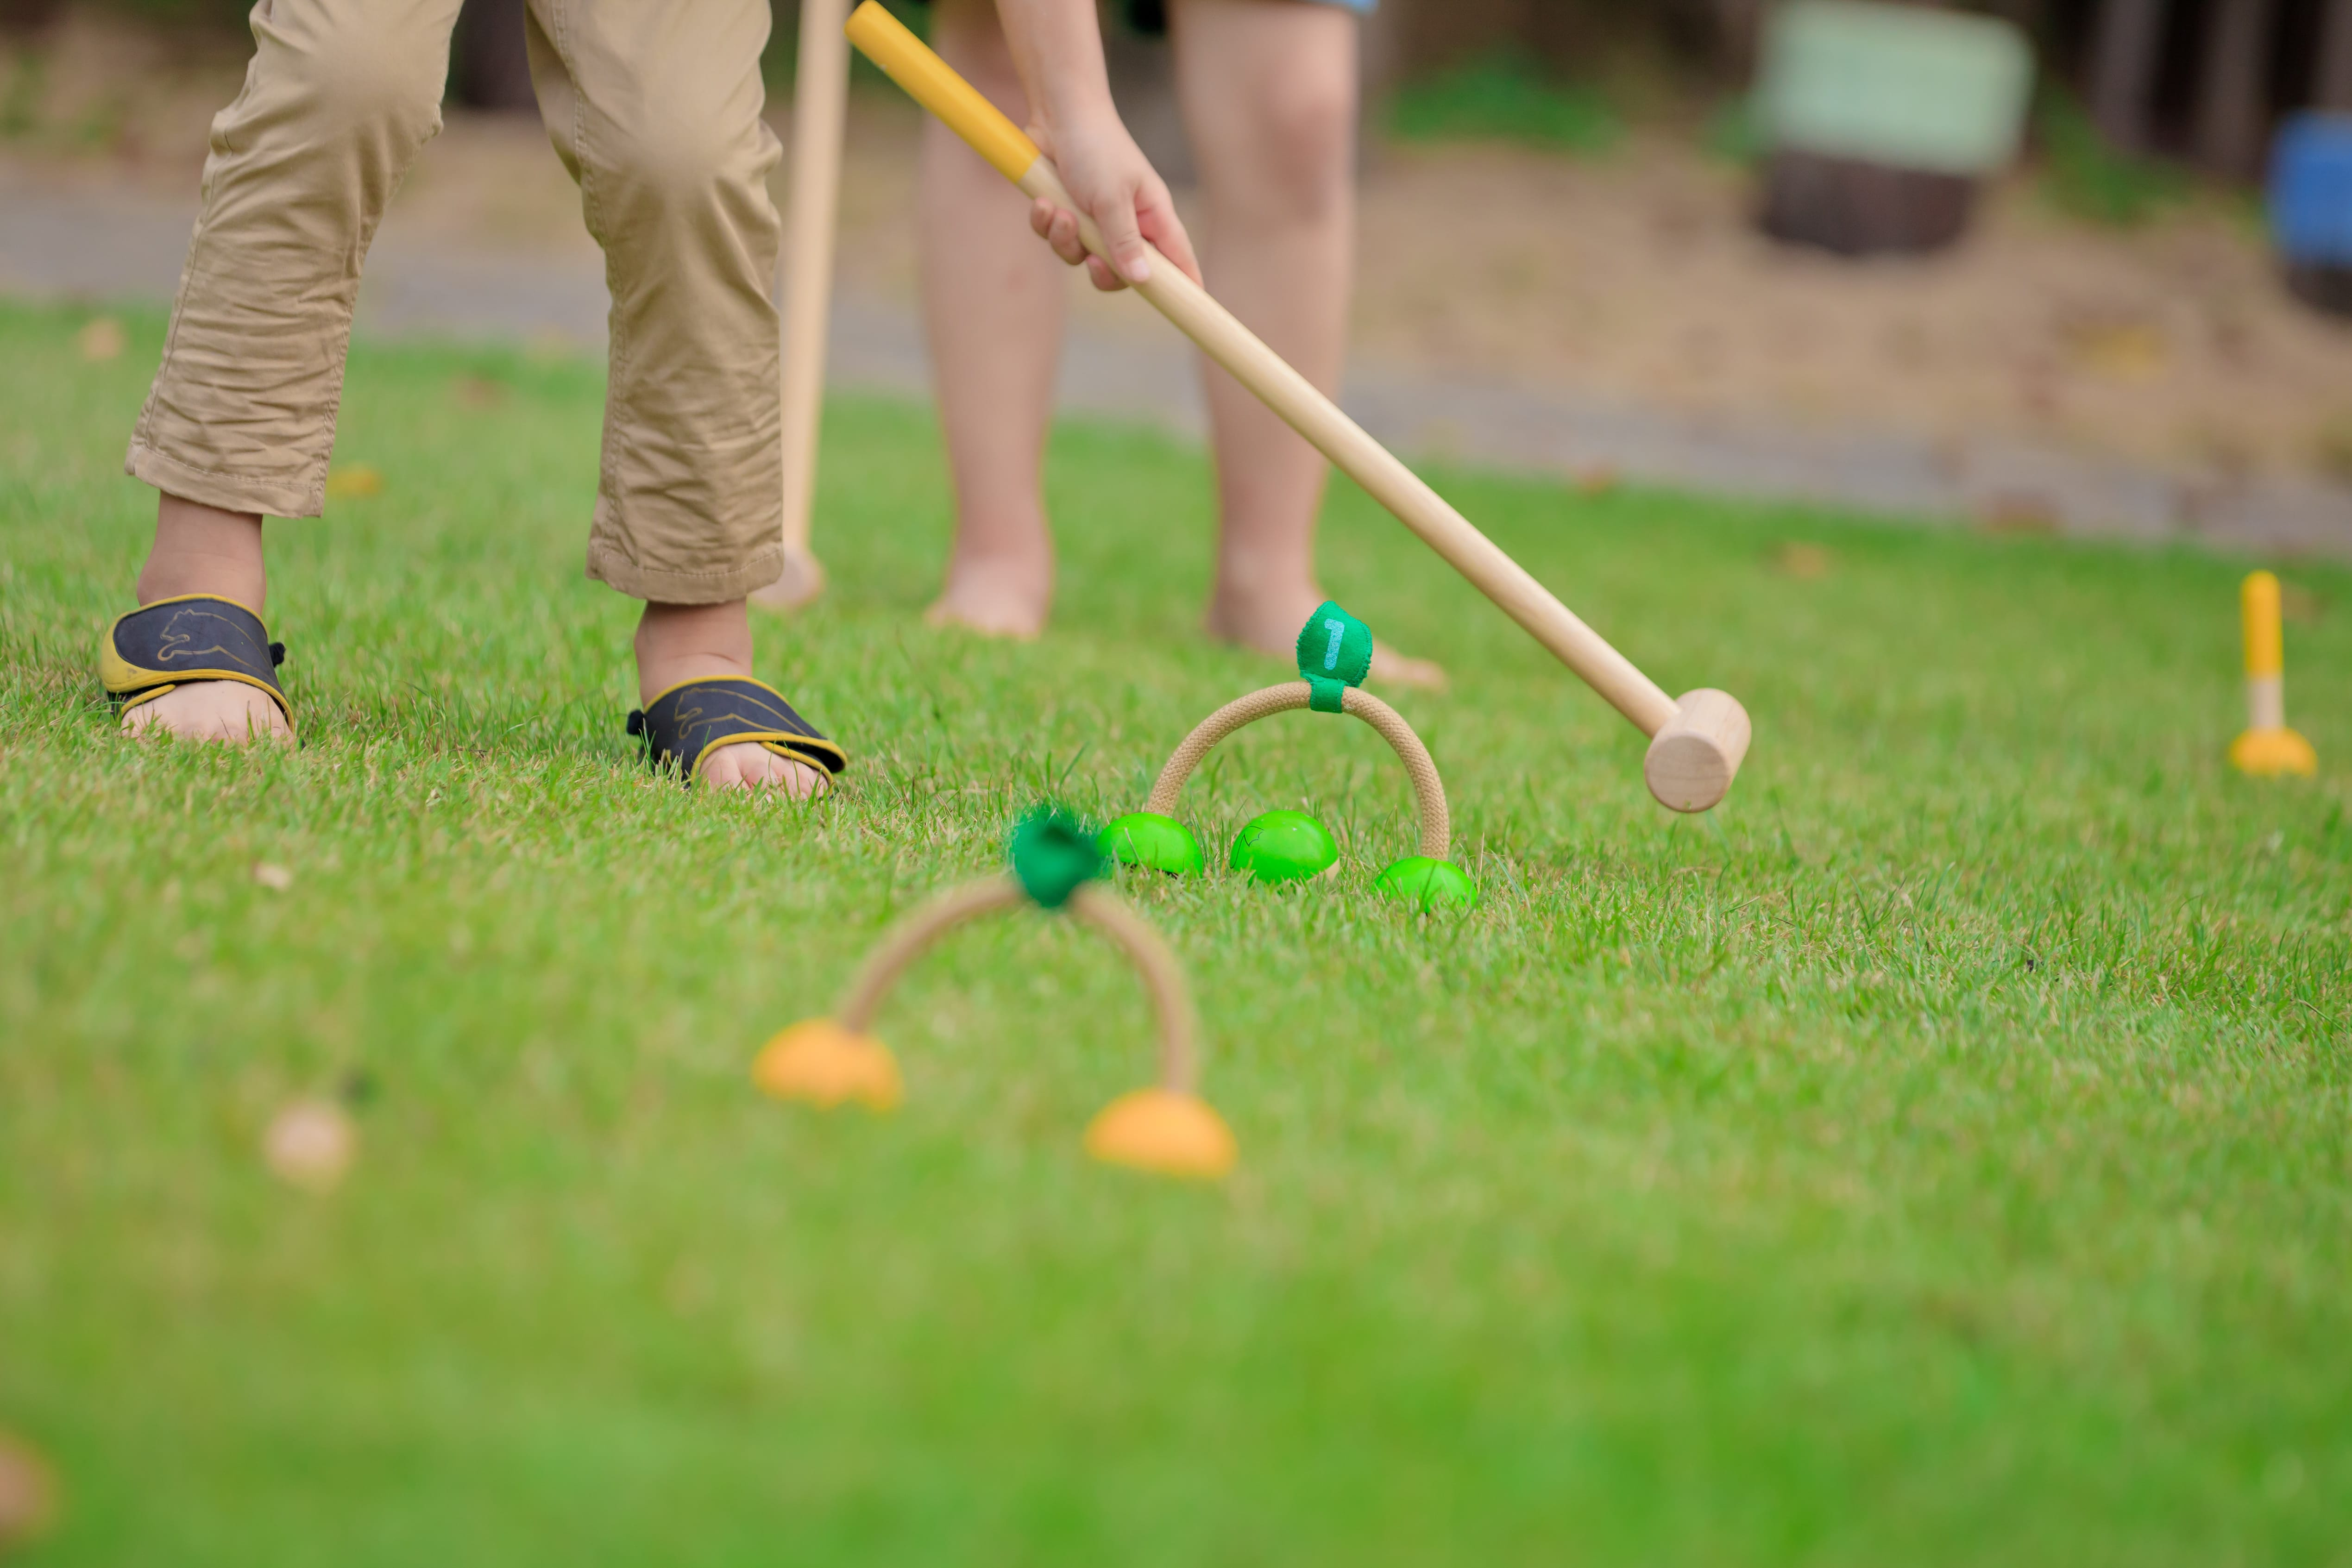 5189_PlanToys_CROQUET_Active_Play_Gross_Motor_Coordination_Concentration_Social_Mathematical_Problem_Solving_3yrs_Wooden_toys_Education_toys_Safety_Toys_Non-toxic_7.jpg